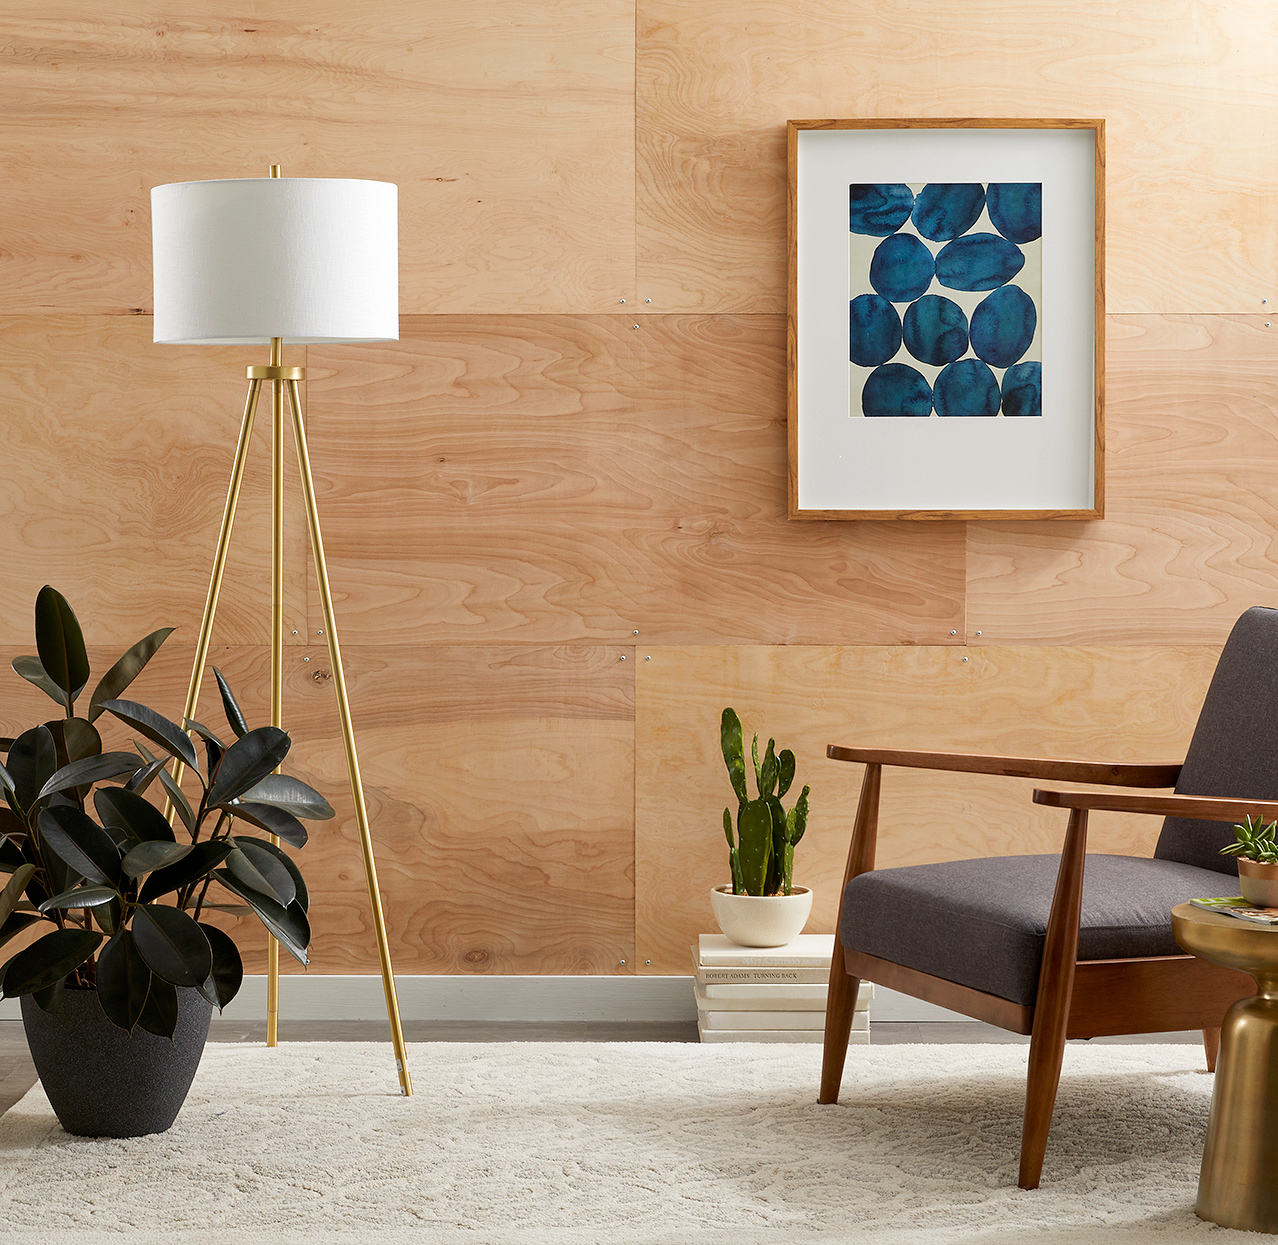 sitting area with plywood wall and decor